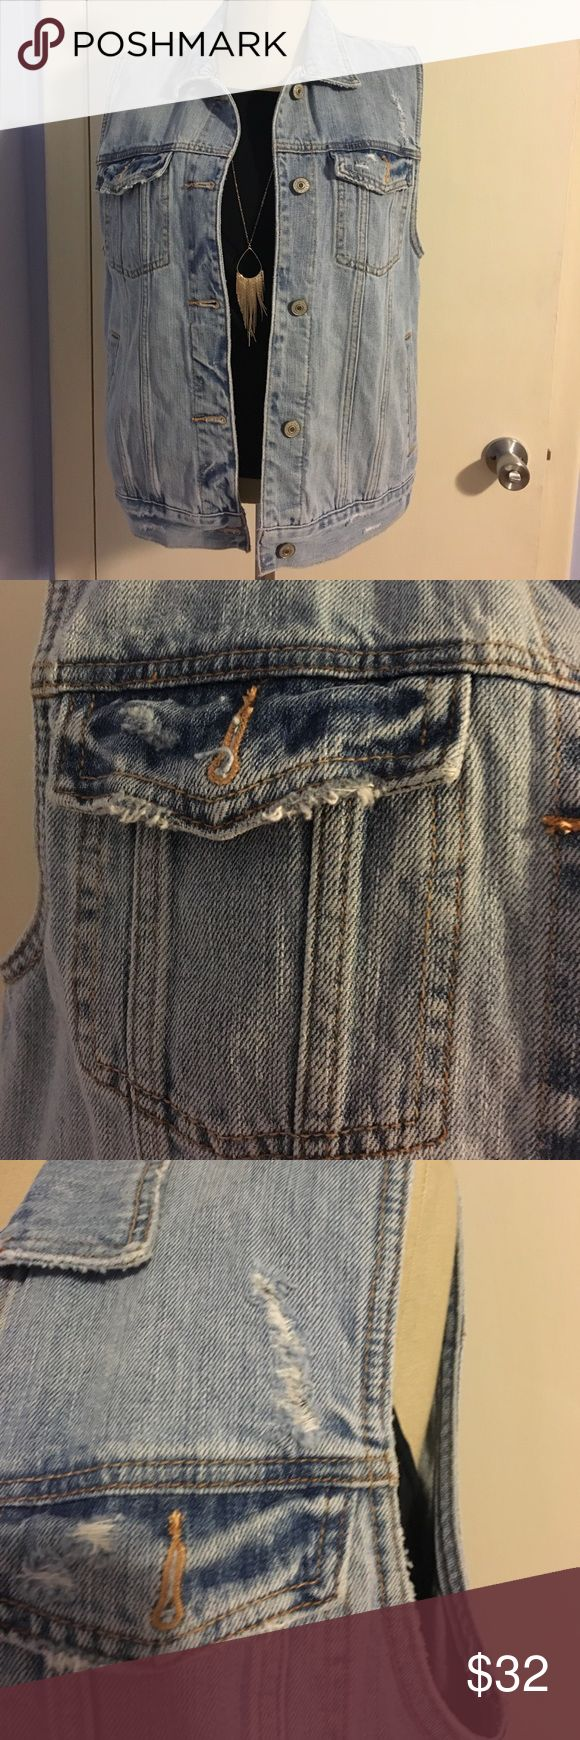 NWT ABERCROMBIE AND FITCH DENIM VEST Adorable denim vest with distressing detailing on pockets. New with tags! Open to offers! Abercrombie & Fitch Jackets & Coats Vests